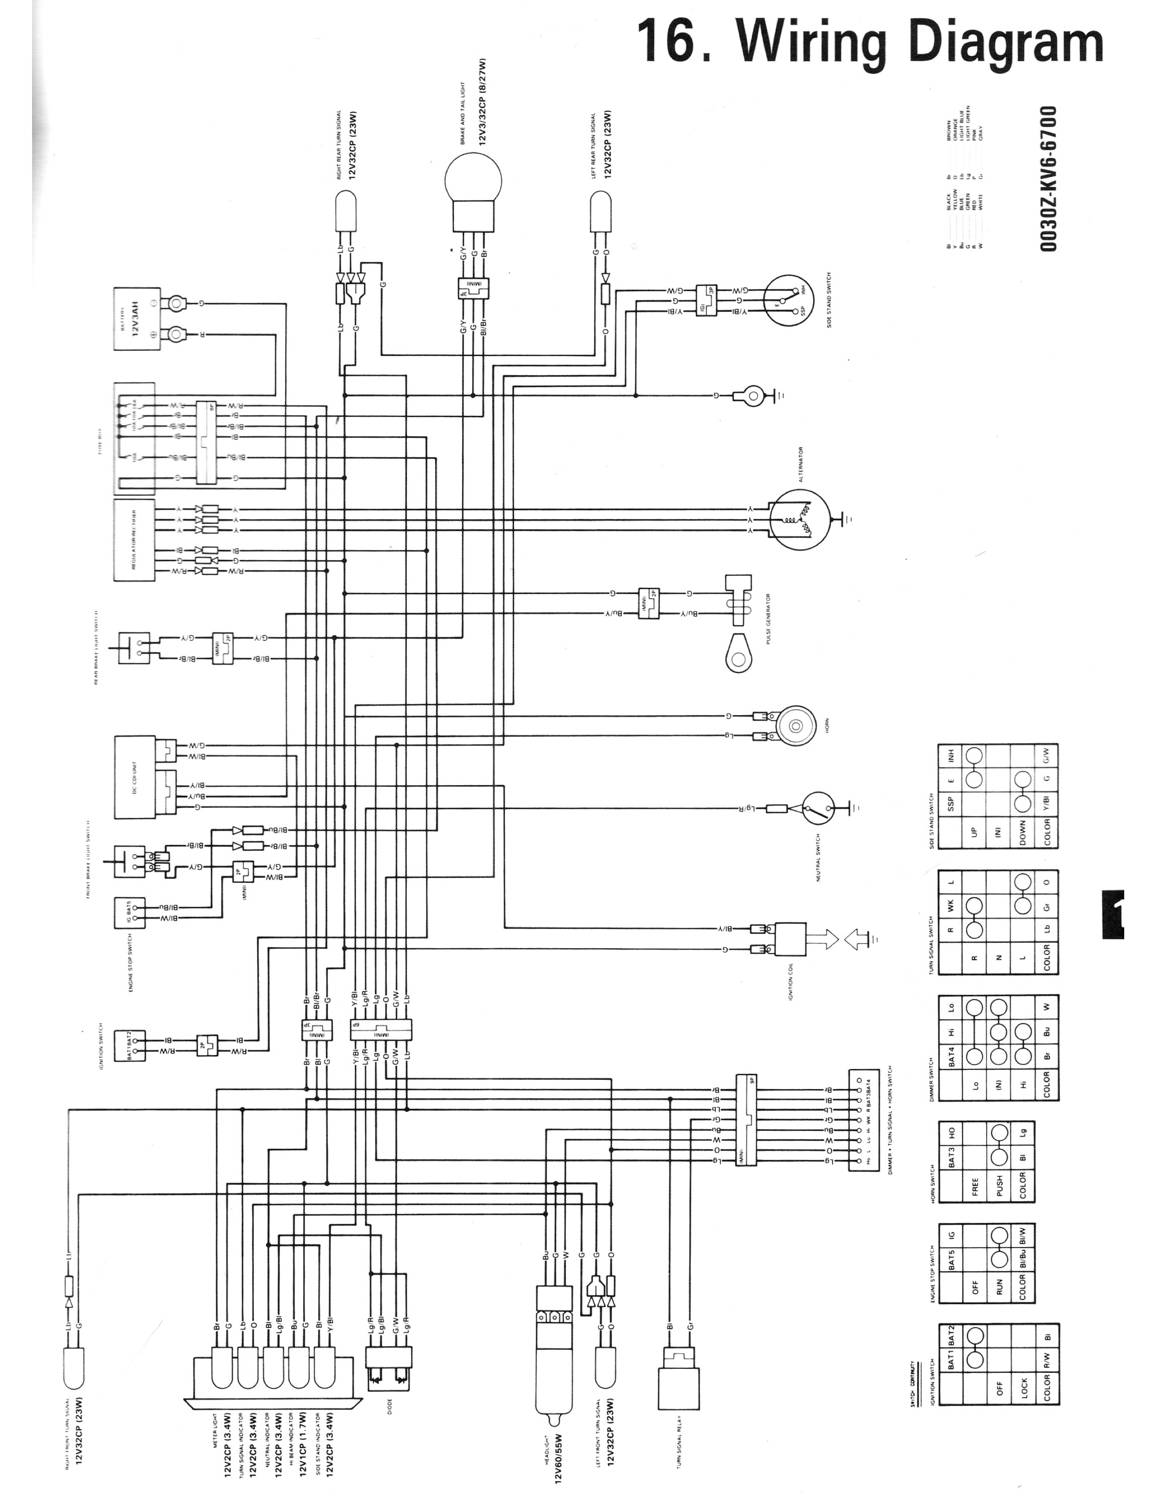 hight resolution of honda reflex wiring diagram honda free engine image for honda tlr 200 wiring diagram homemade tlr200